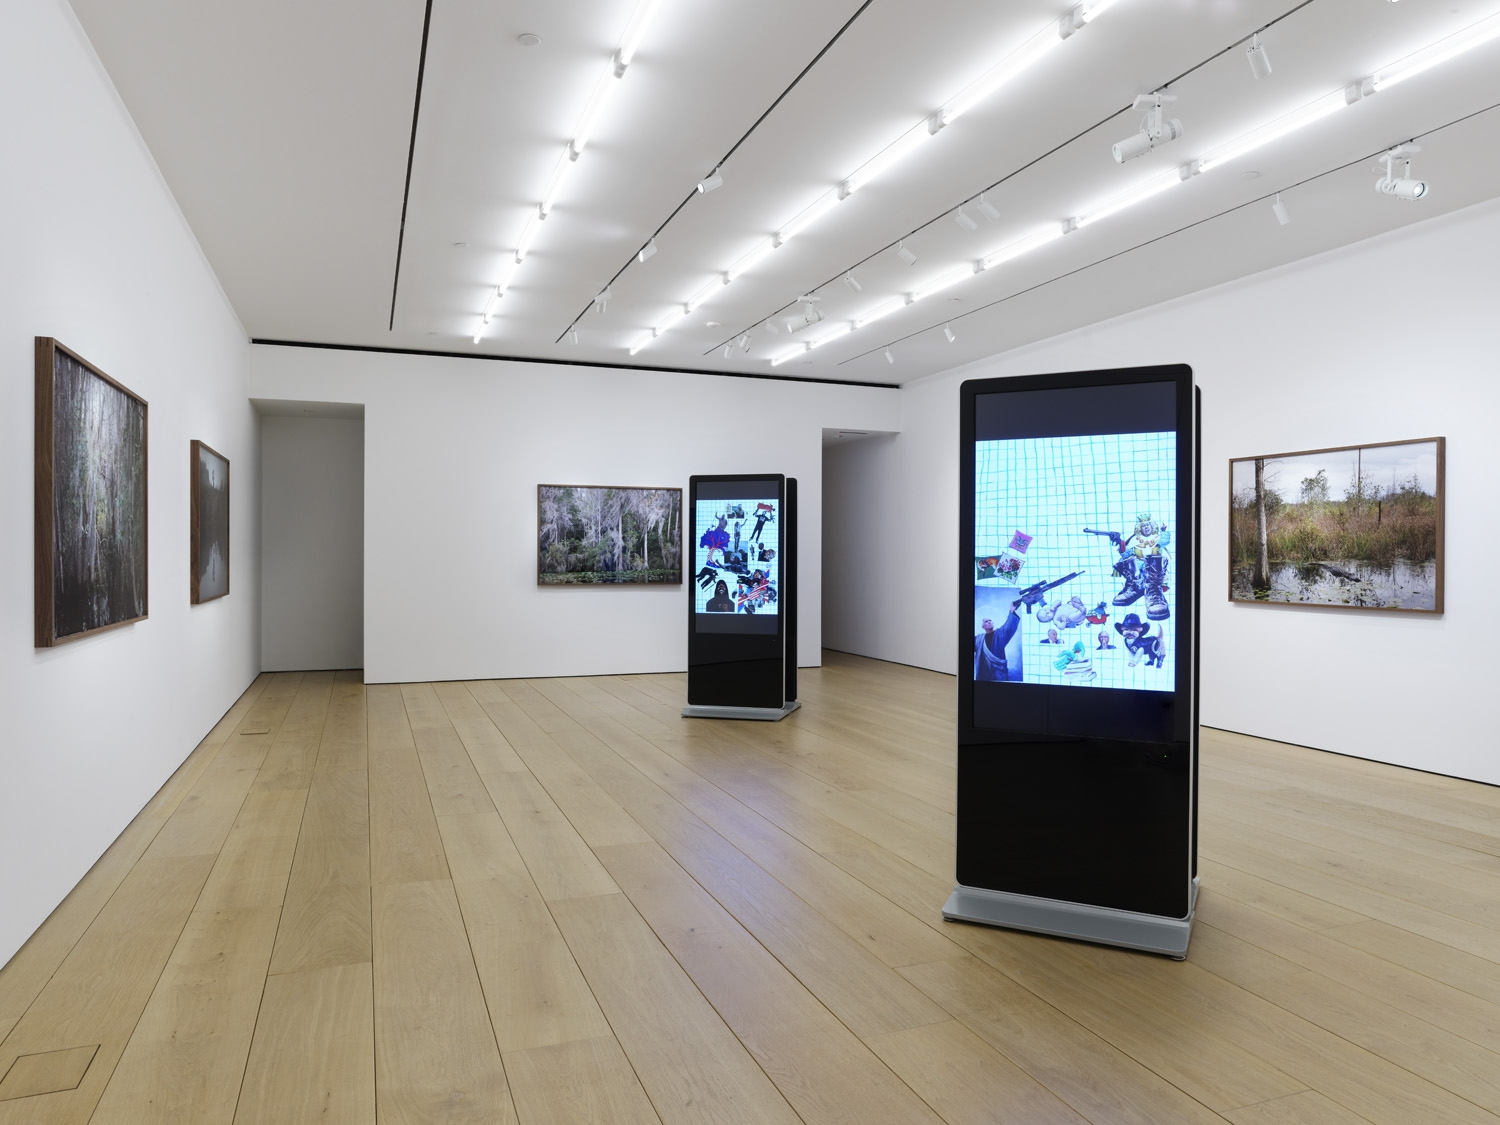 Second installation view of the exhibition Catherine Opie: Rhetorical Landscapes at Lehmann Maupin New York